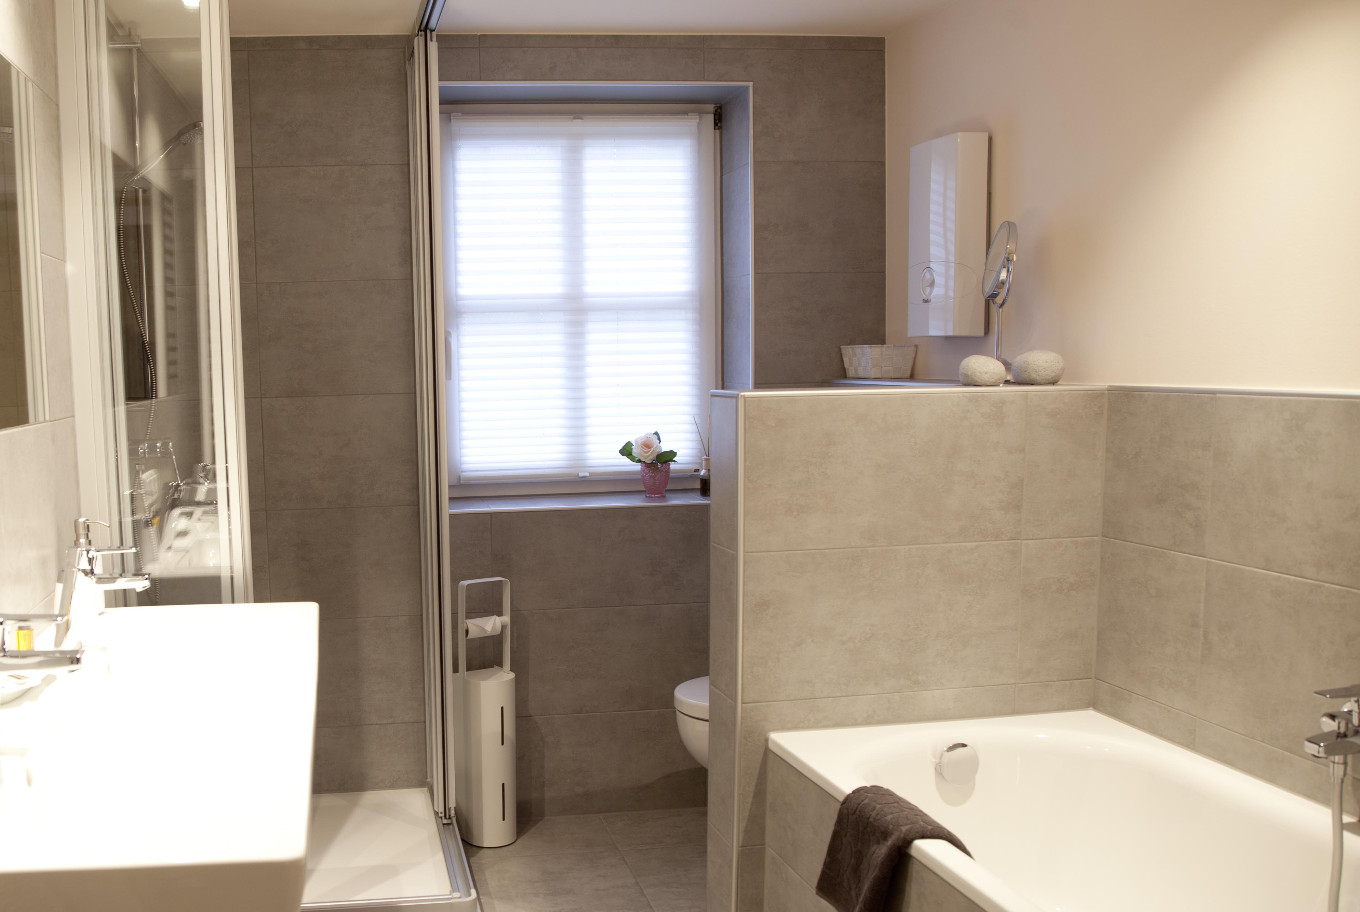 Our bathroom of the apartments in Arthotel ANA Paderborn